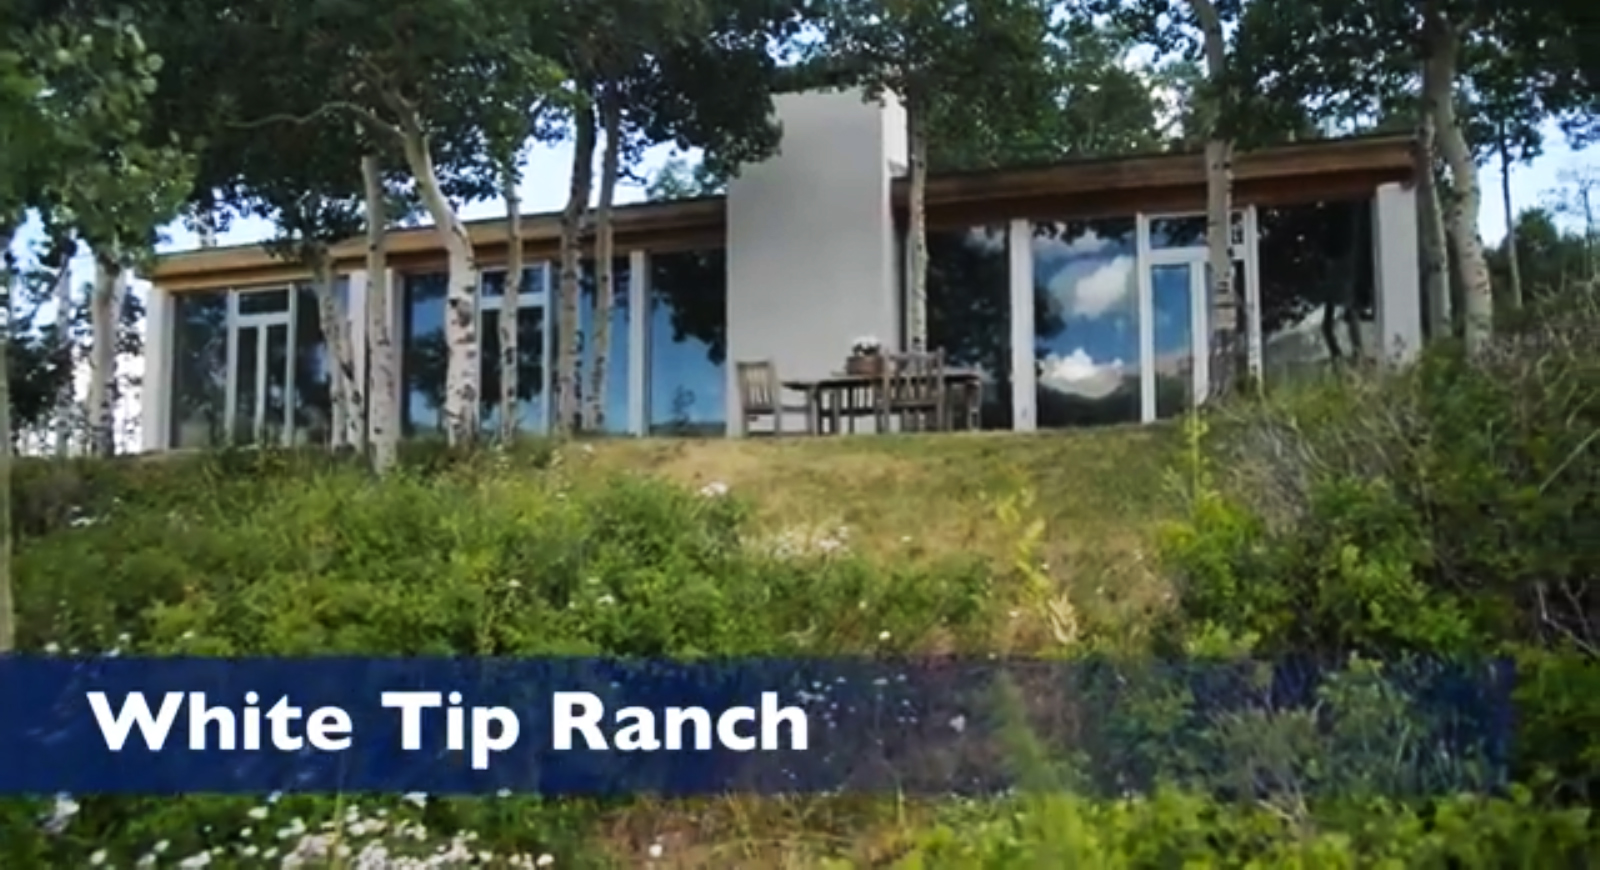 White Tip Ranch